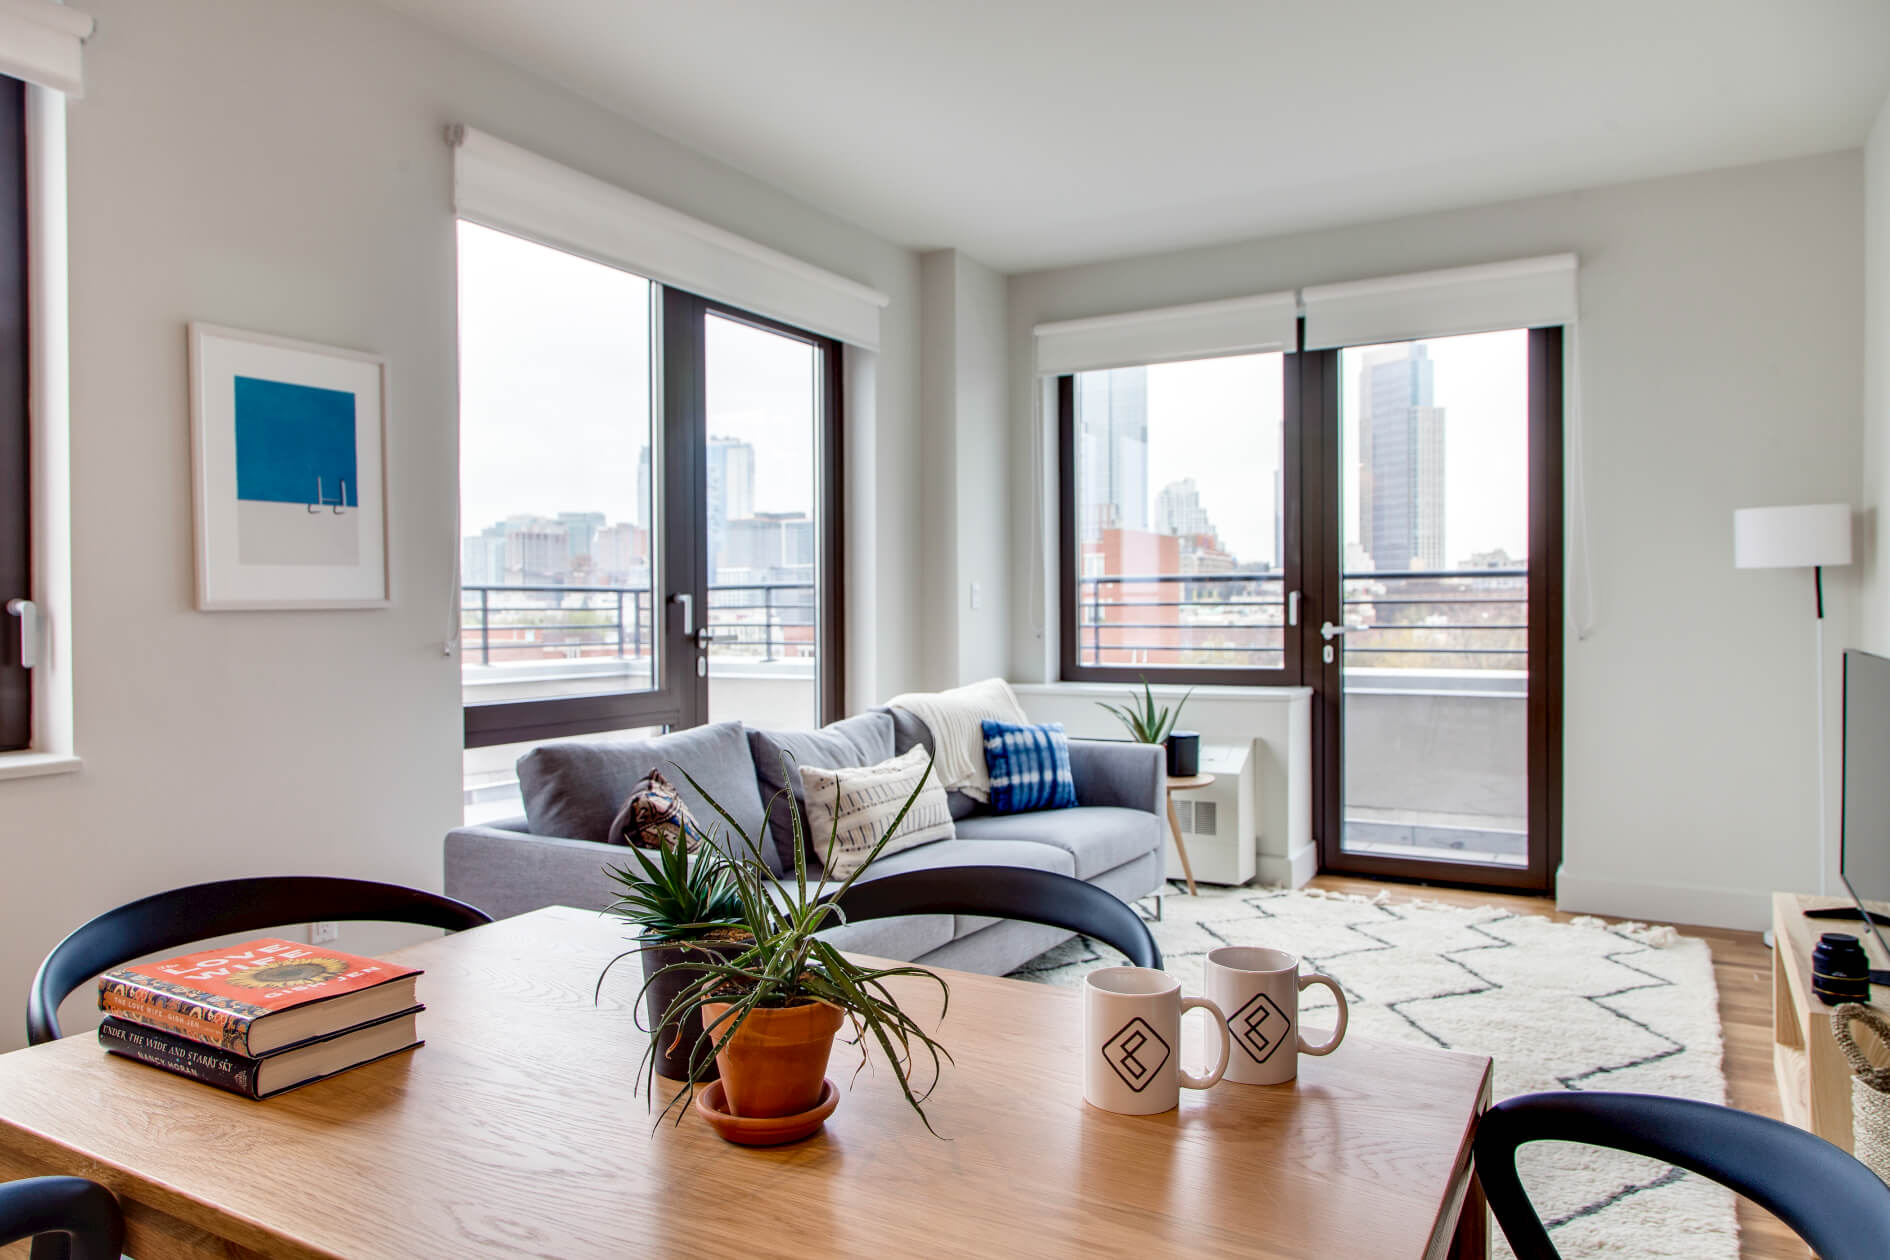 The shared living room at Common Baltic in Boerum Hill, Brooklyn.